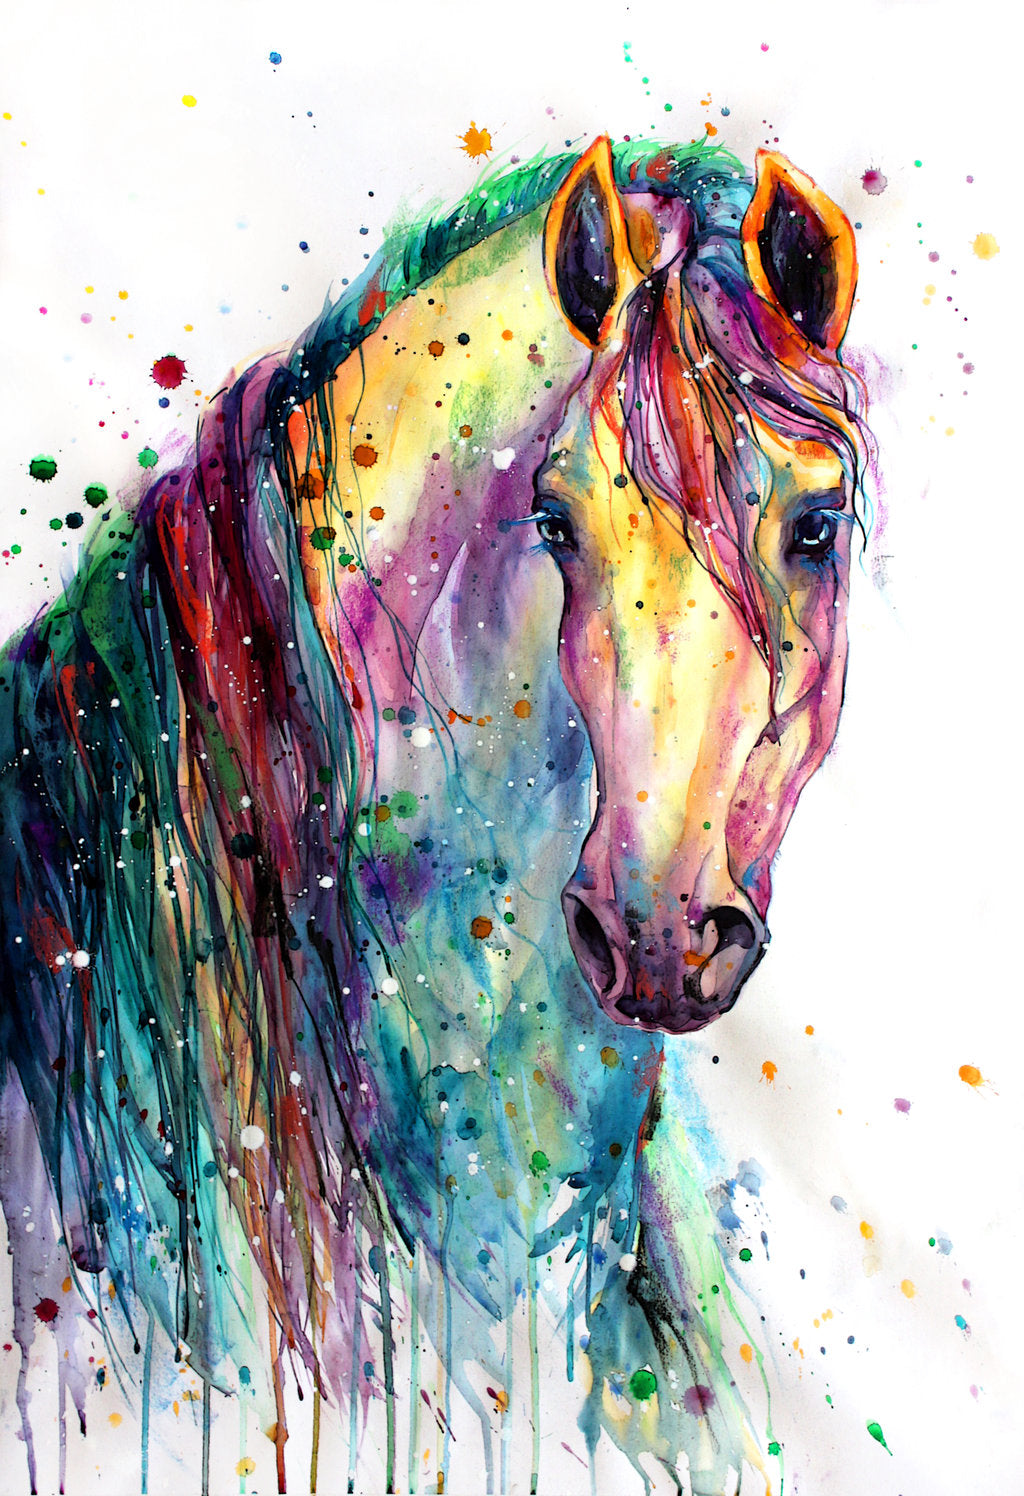 Horse Fabric Watercolor Horse Head And Mane Fabric Panel 2046 Beautiful Quilt